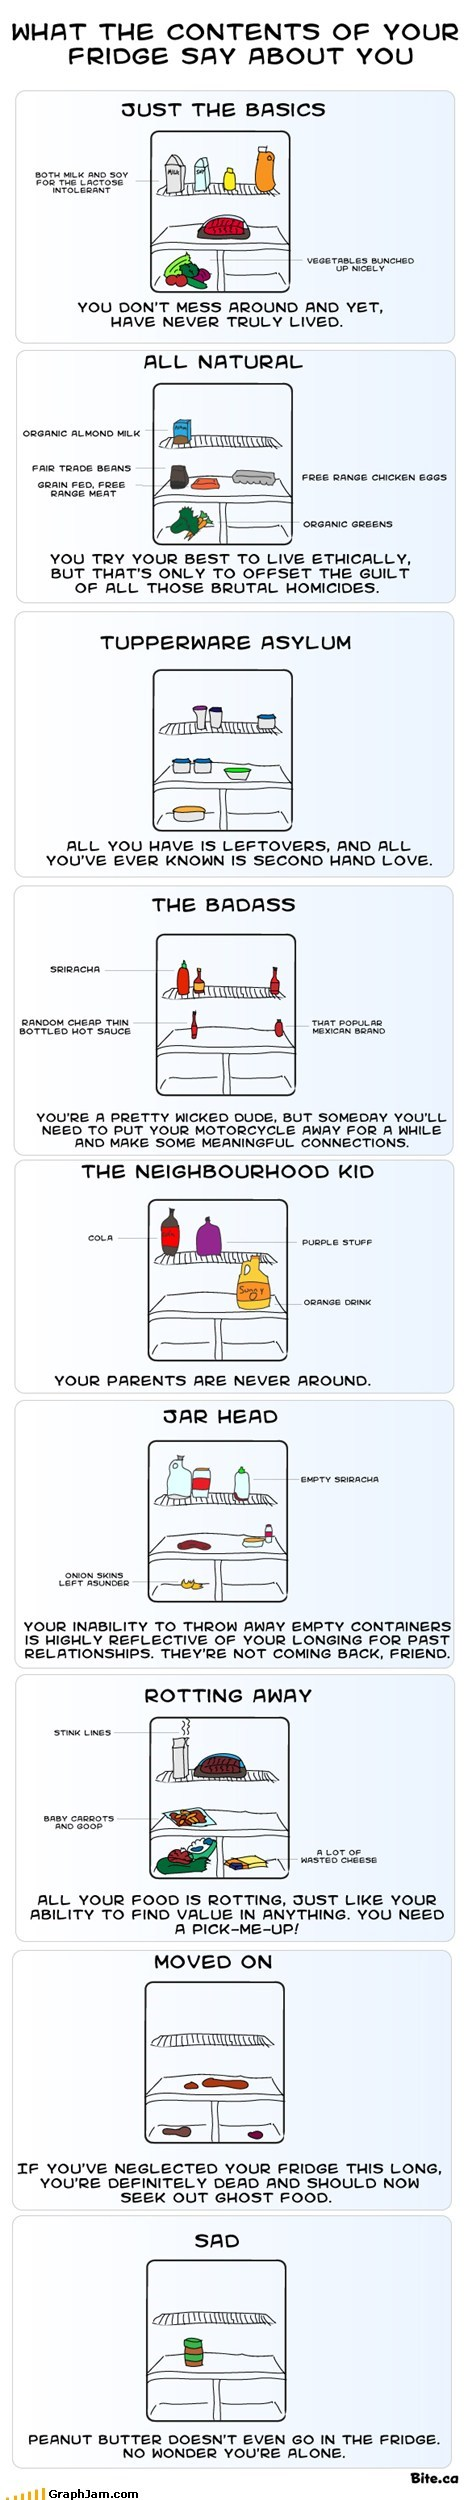 What the Contents of Your Fridge Say About you